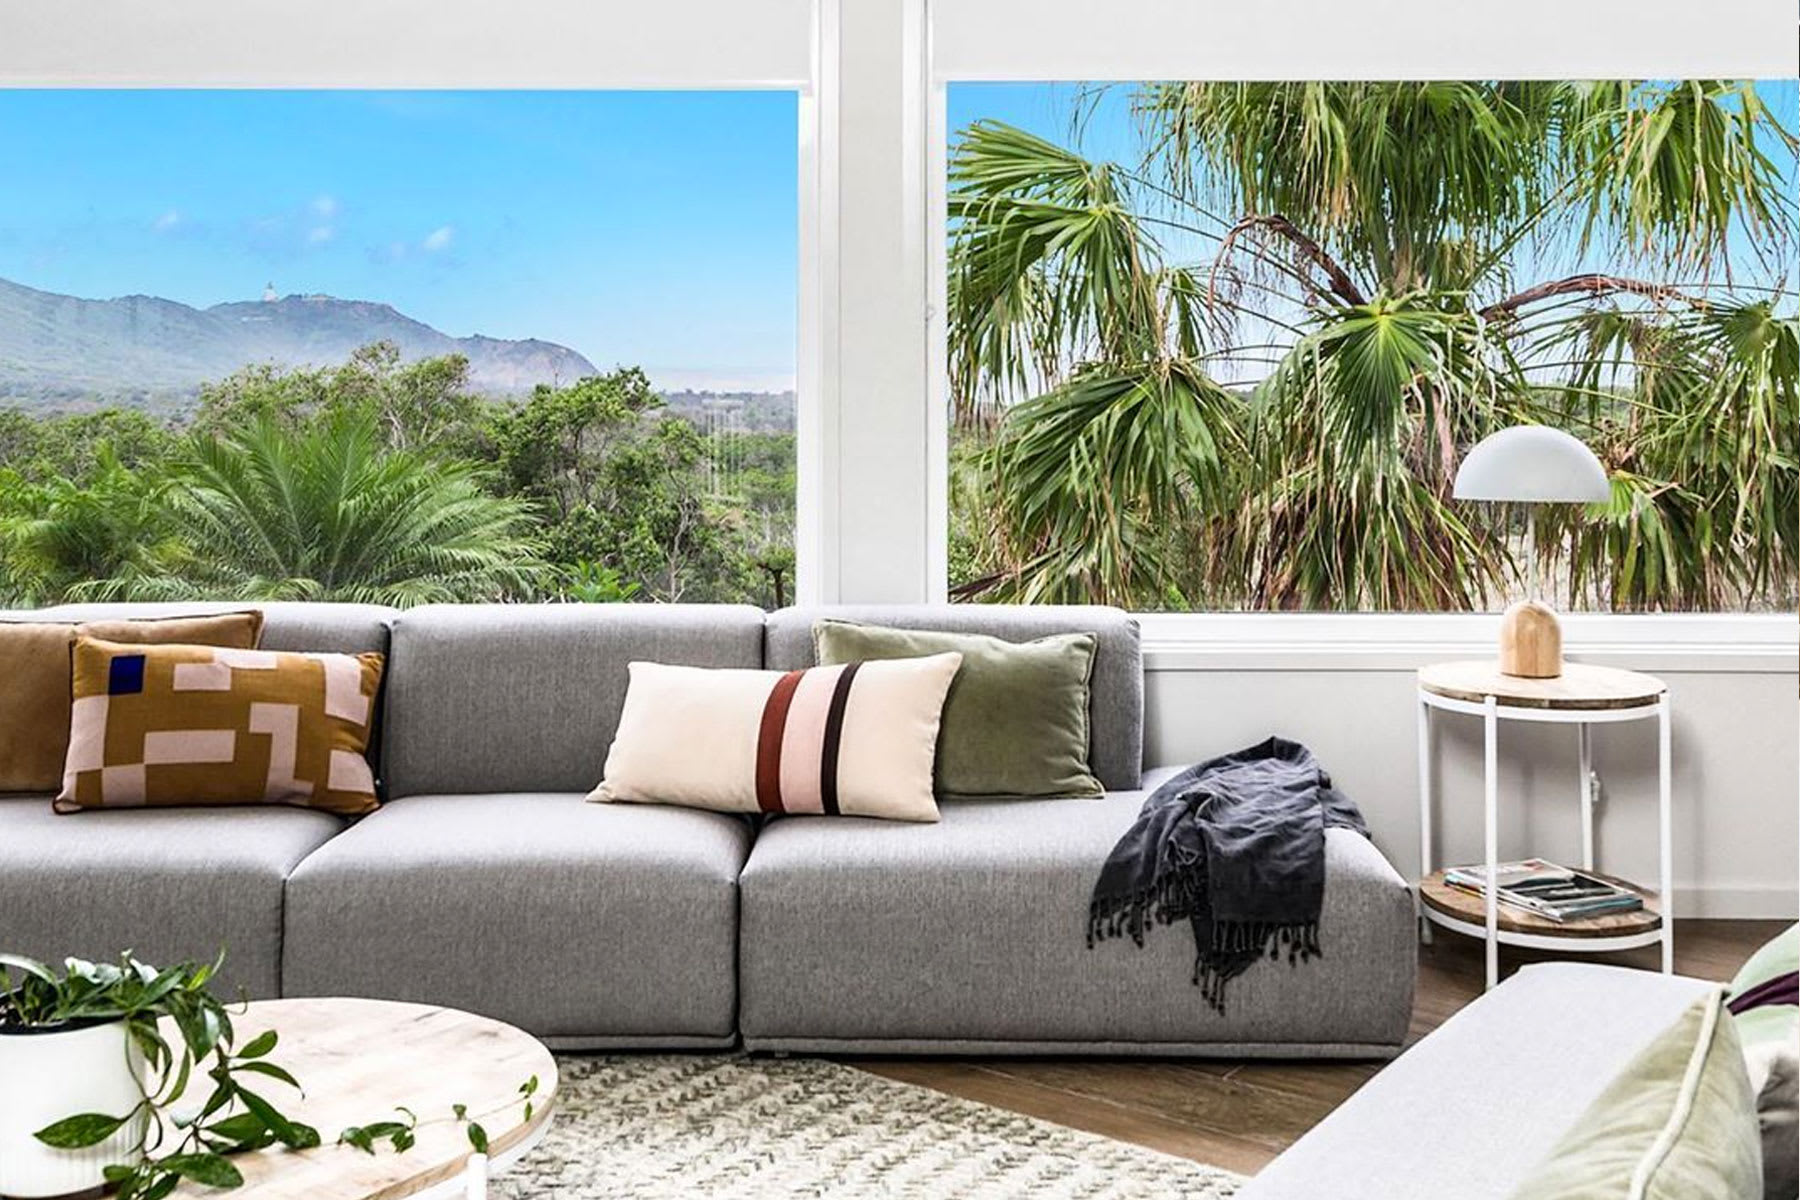 modular grey sofa in living room with a view and side table